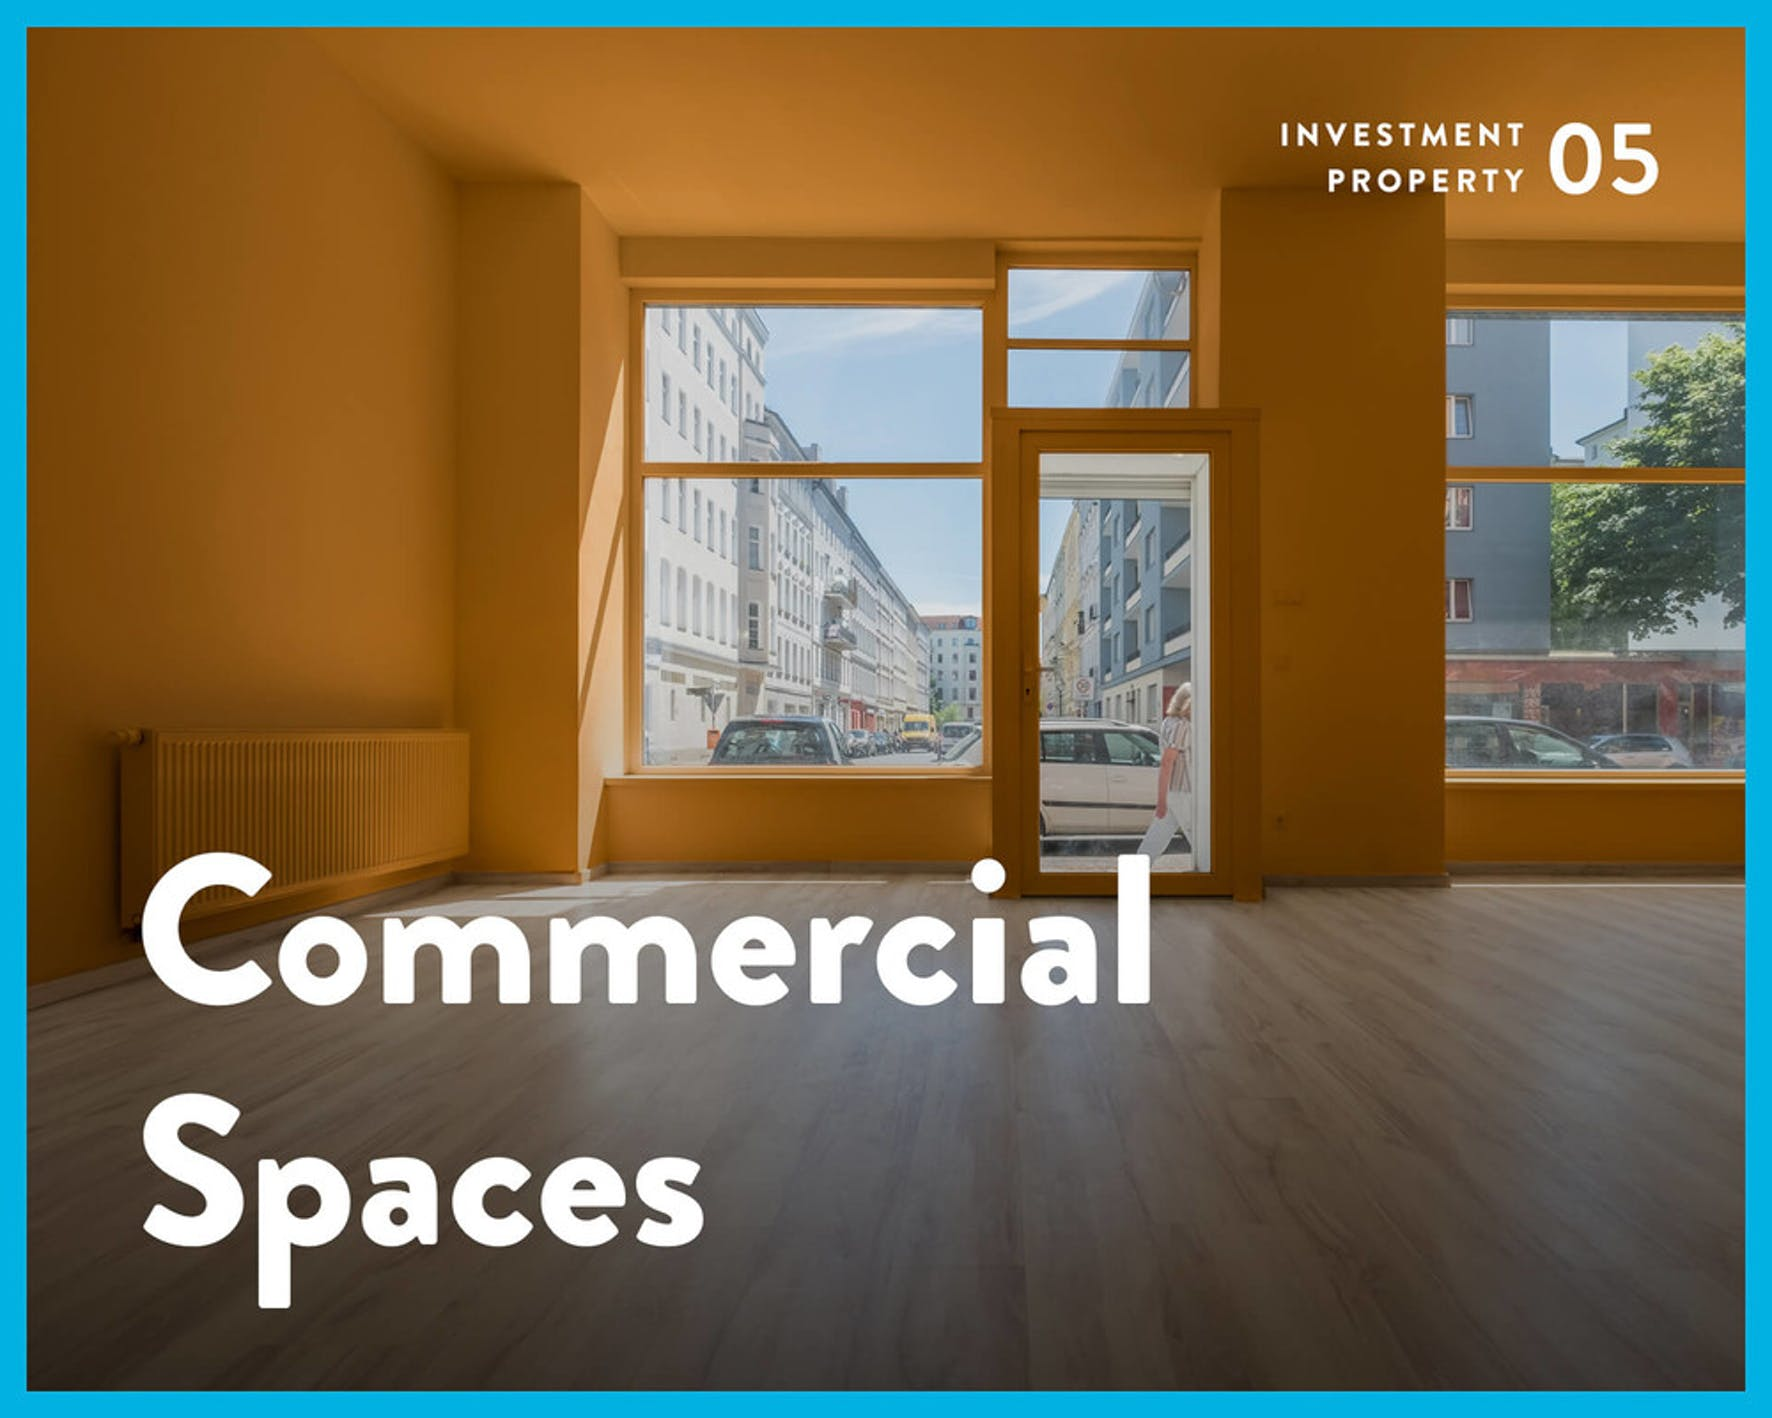 Real estate investing - commercial spaces